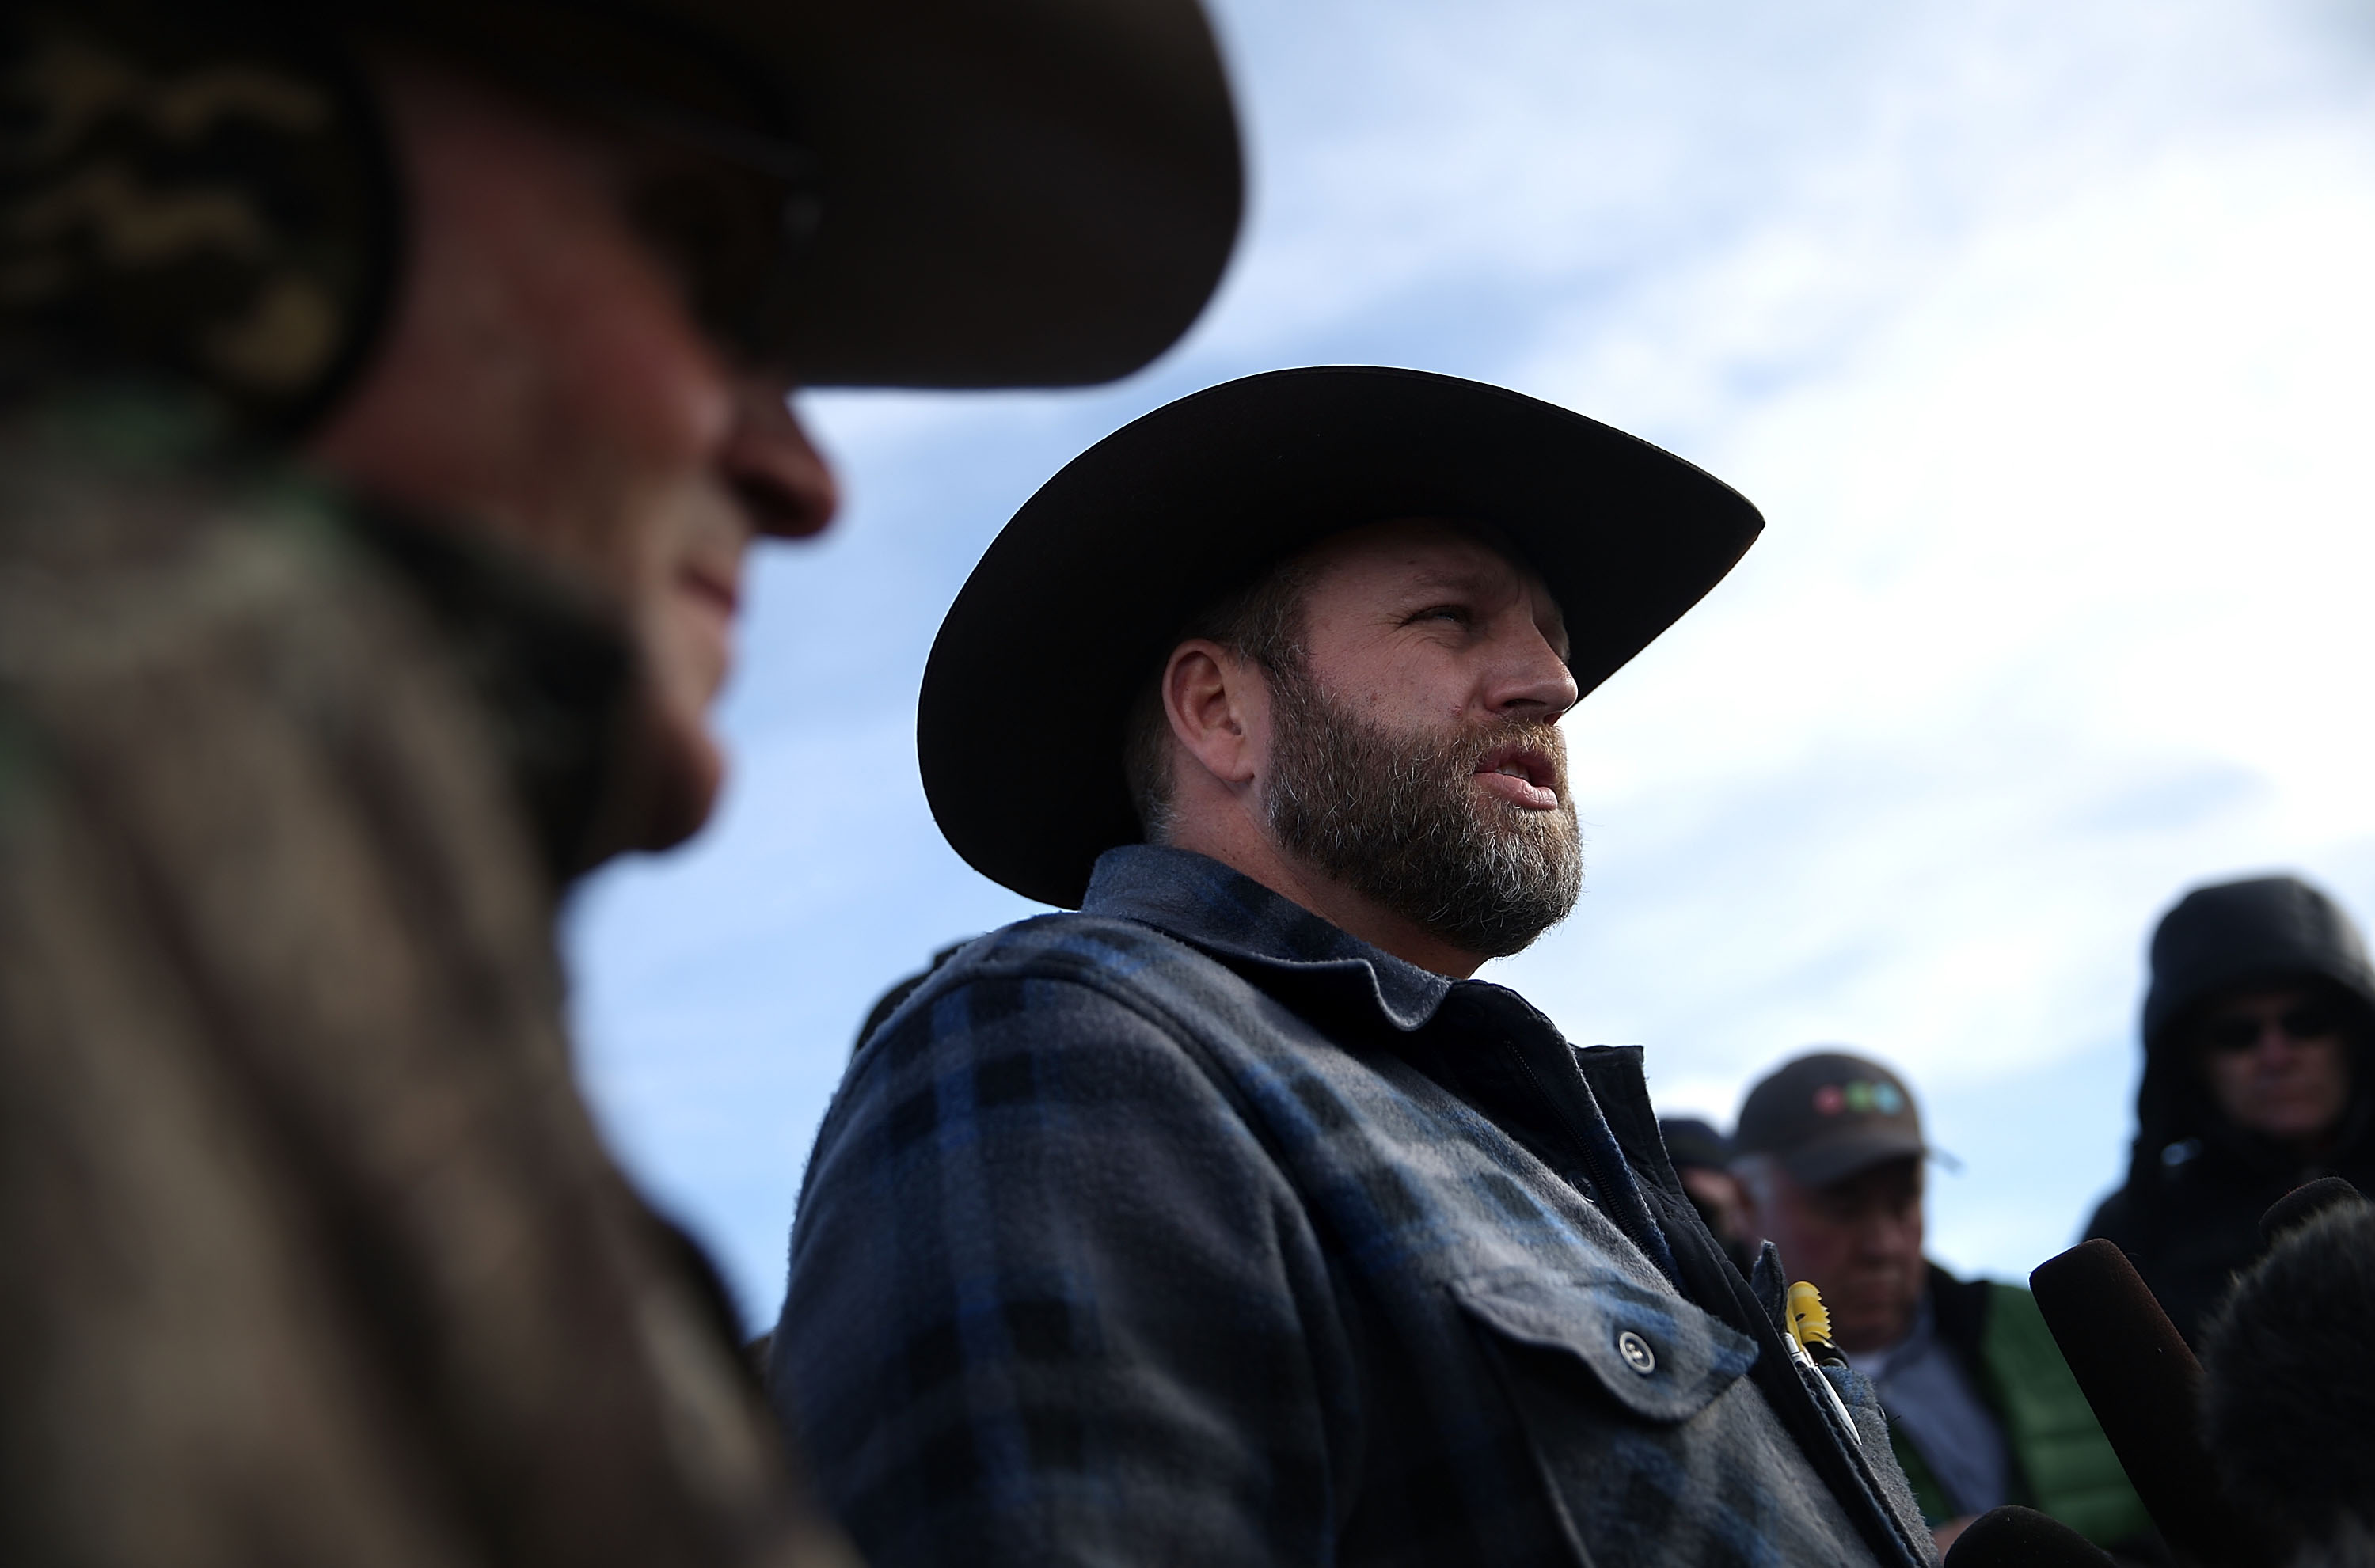 Ammon Bundy speaks to members of the media in front of the Malheur National Wildlife Refuge Headquarters on Jan. 6, 2016 near Burns, Oregon.